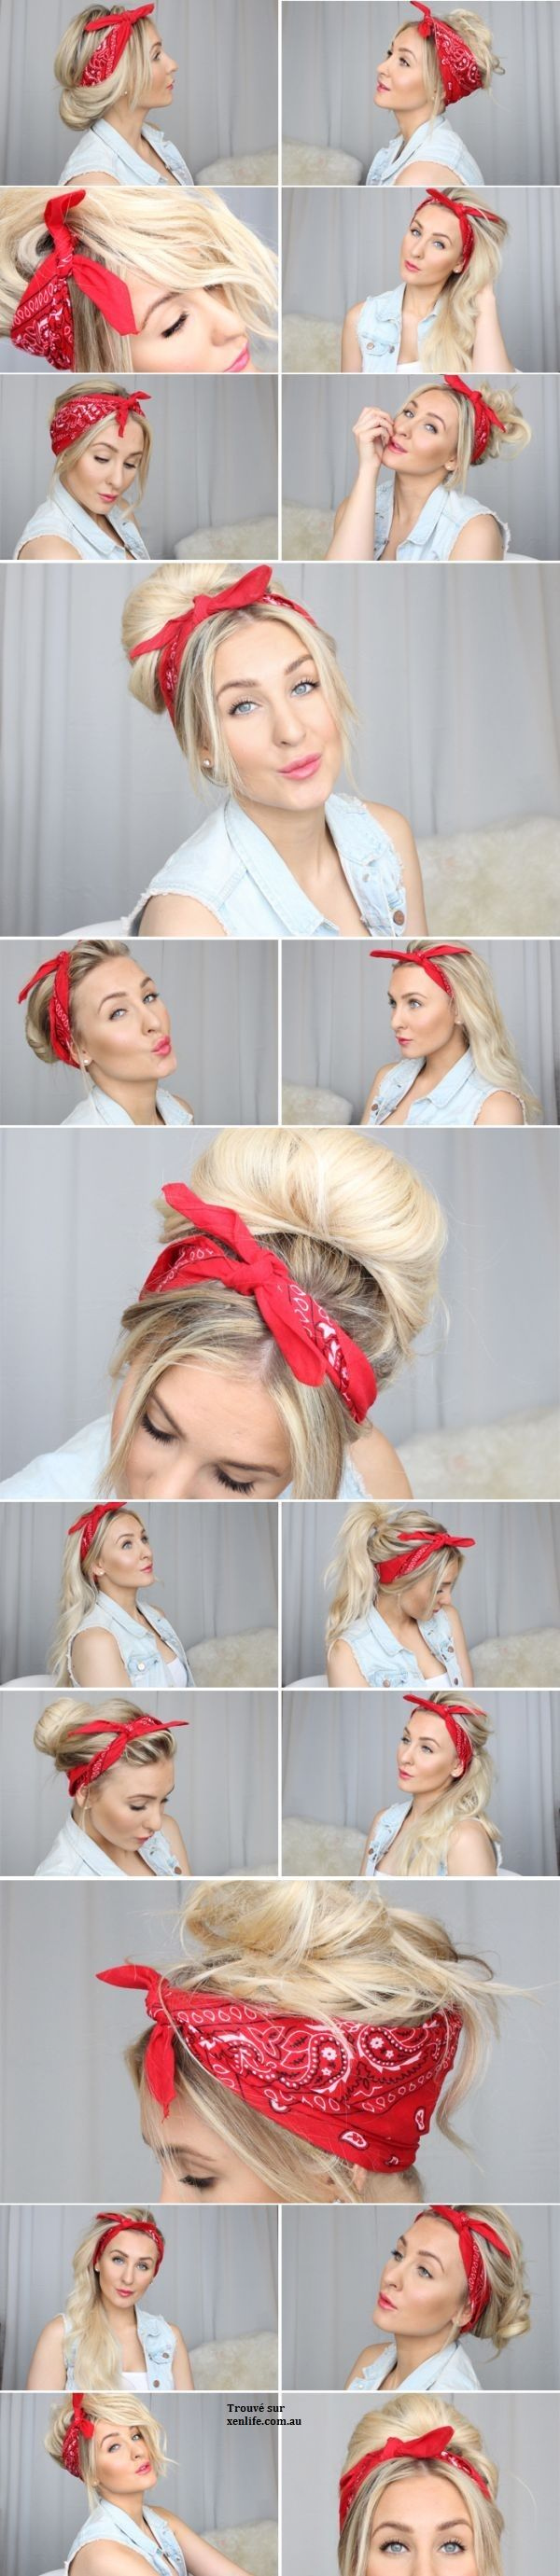 1000 Images About Coiffure On Pinterest Coiffures Coupe And Bobs